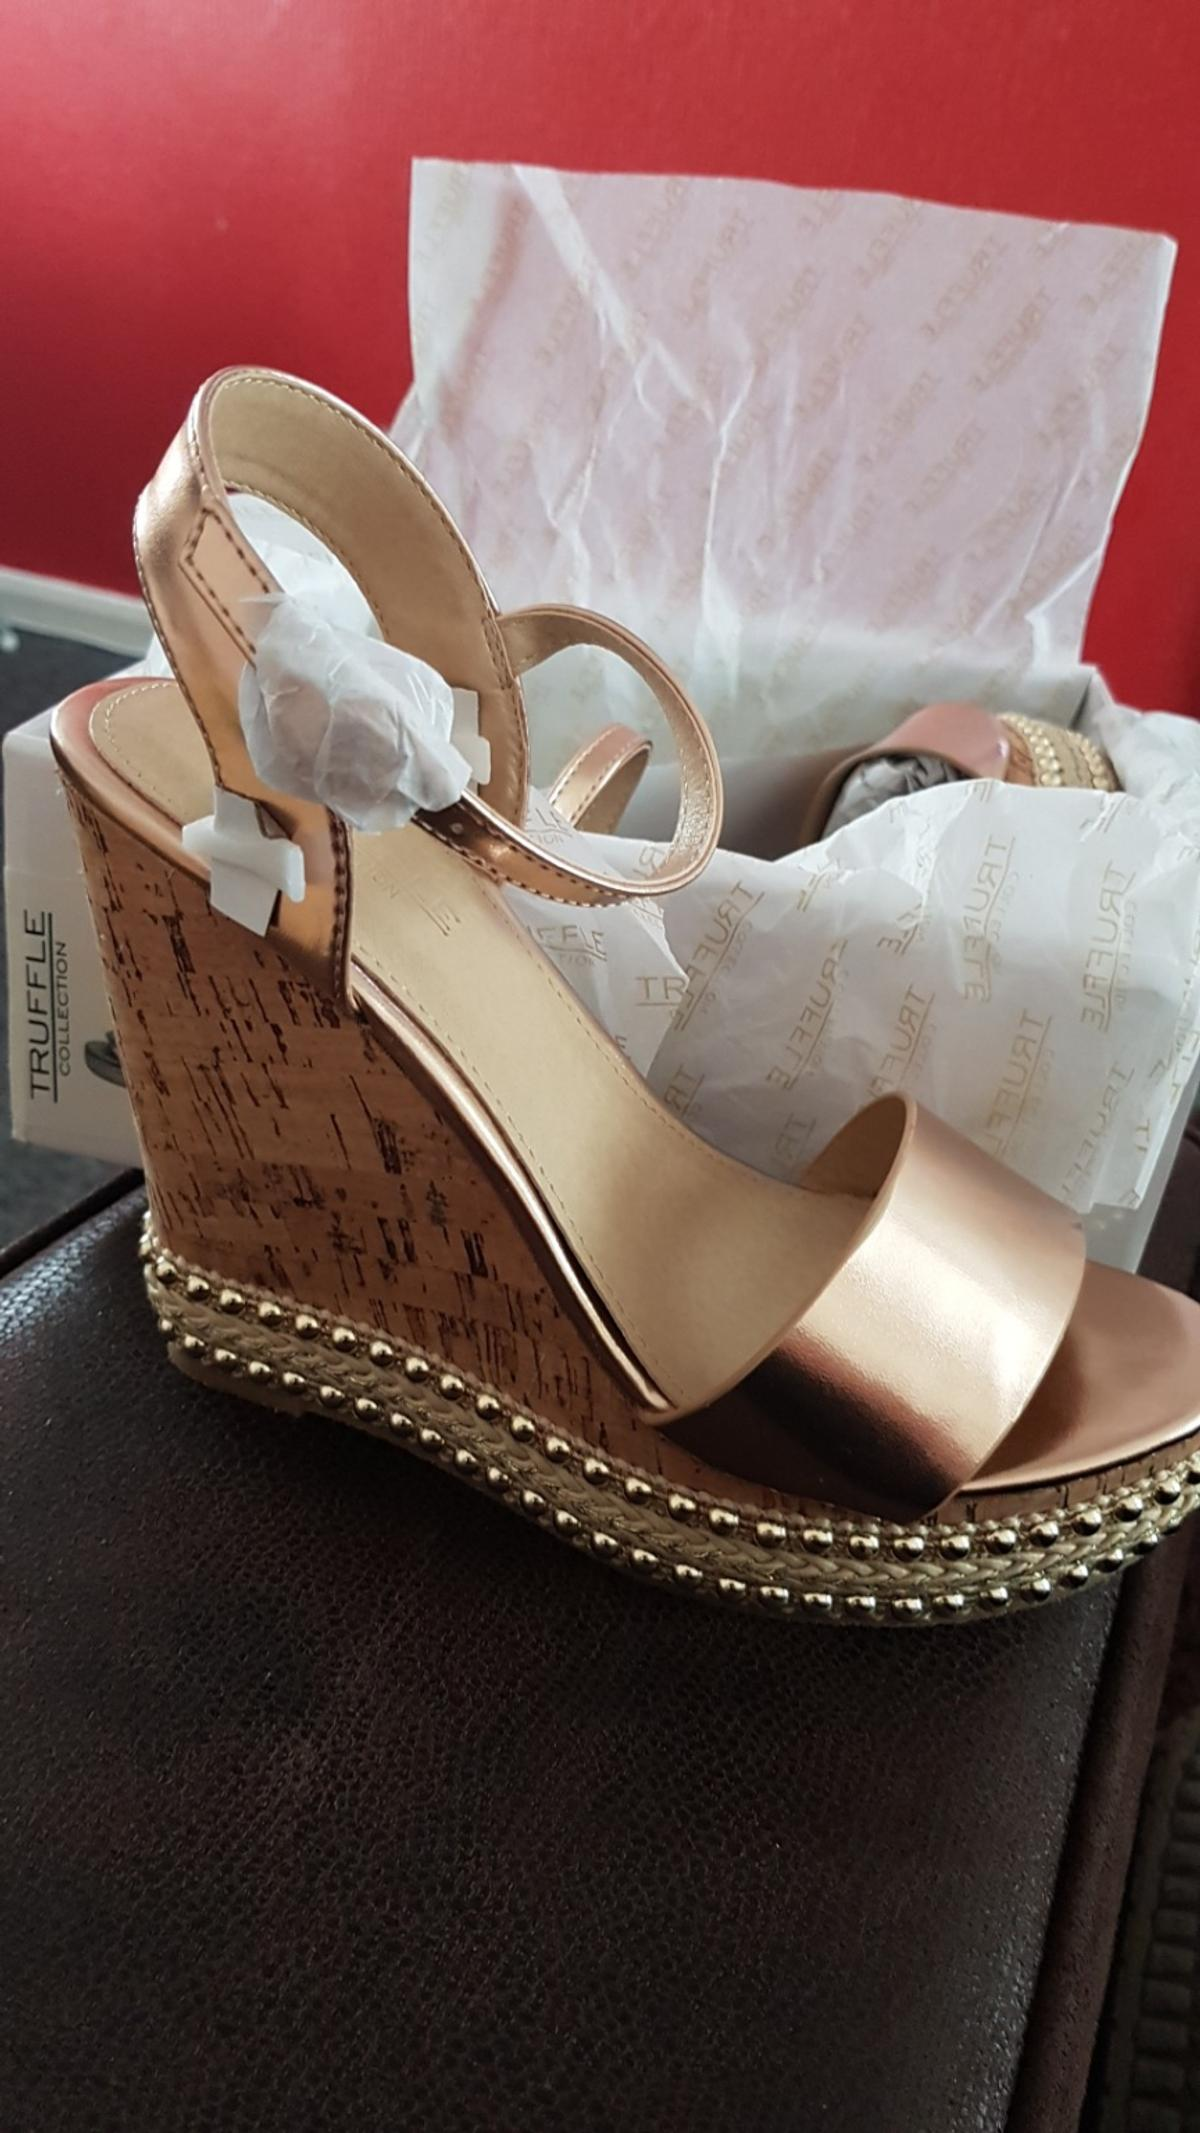 exclusive range coupon codes many styles Rose Gold wedges in CH65 Port for £15.00 for sale   Shpock